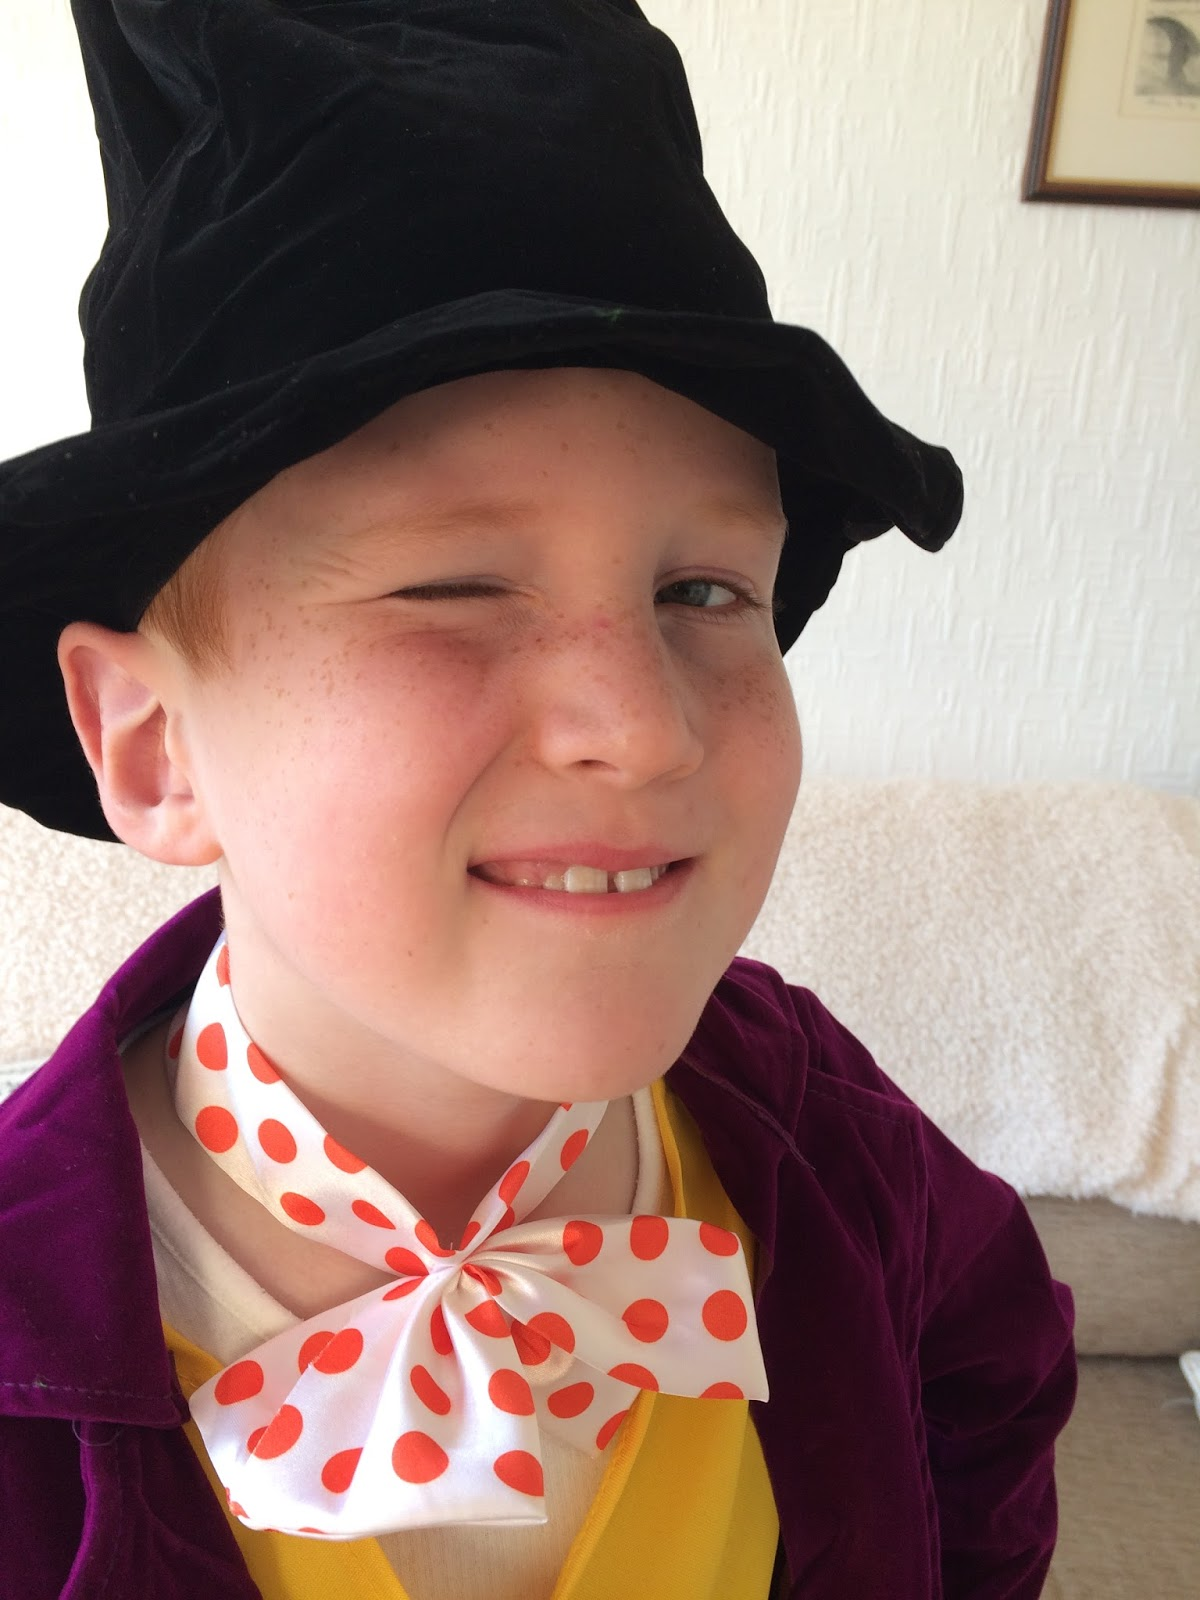 Ieuan as Willy Wonka